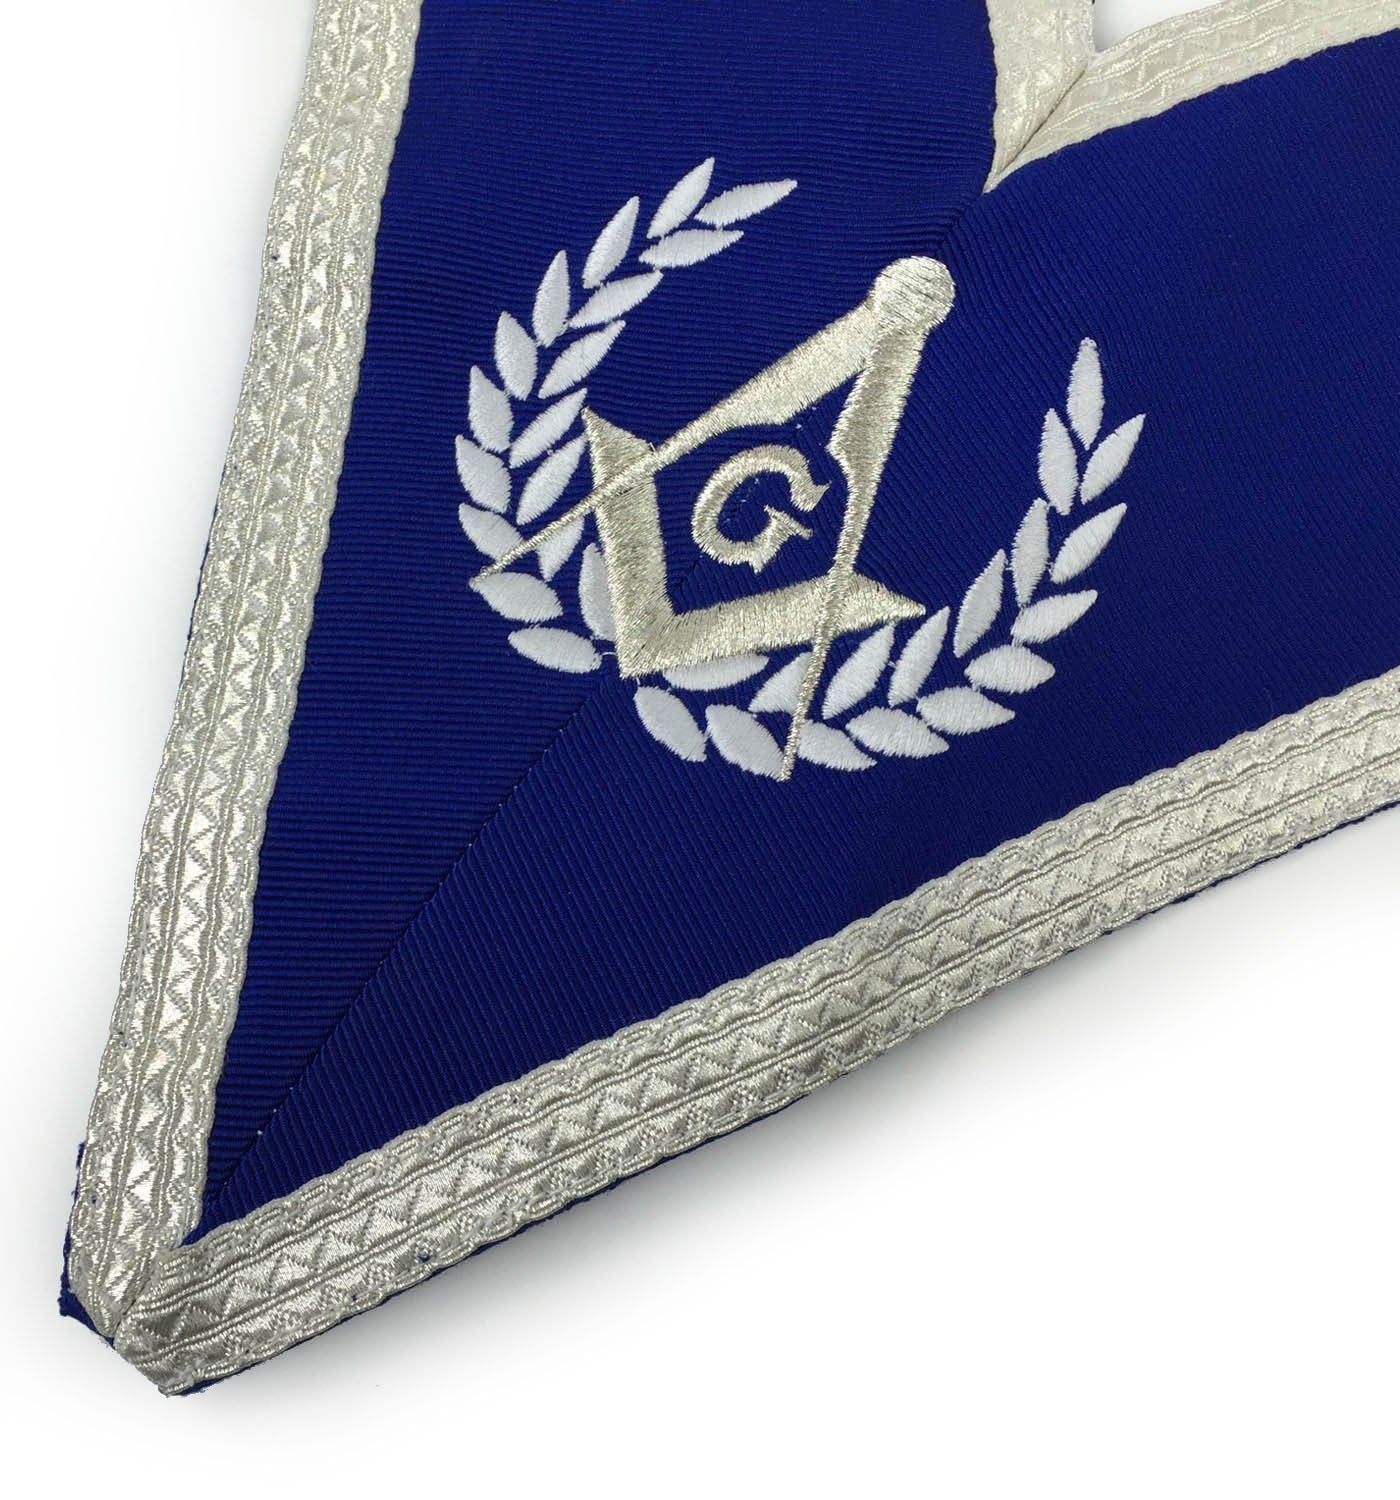 Blue Lodge Master Mason Apron Set Apron, Collar gauntlets (Cuffs) - Bricks Masons